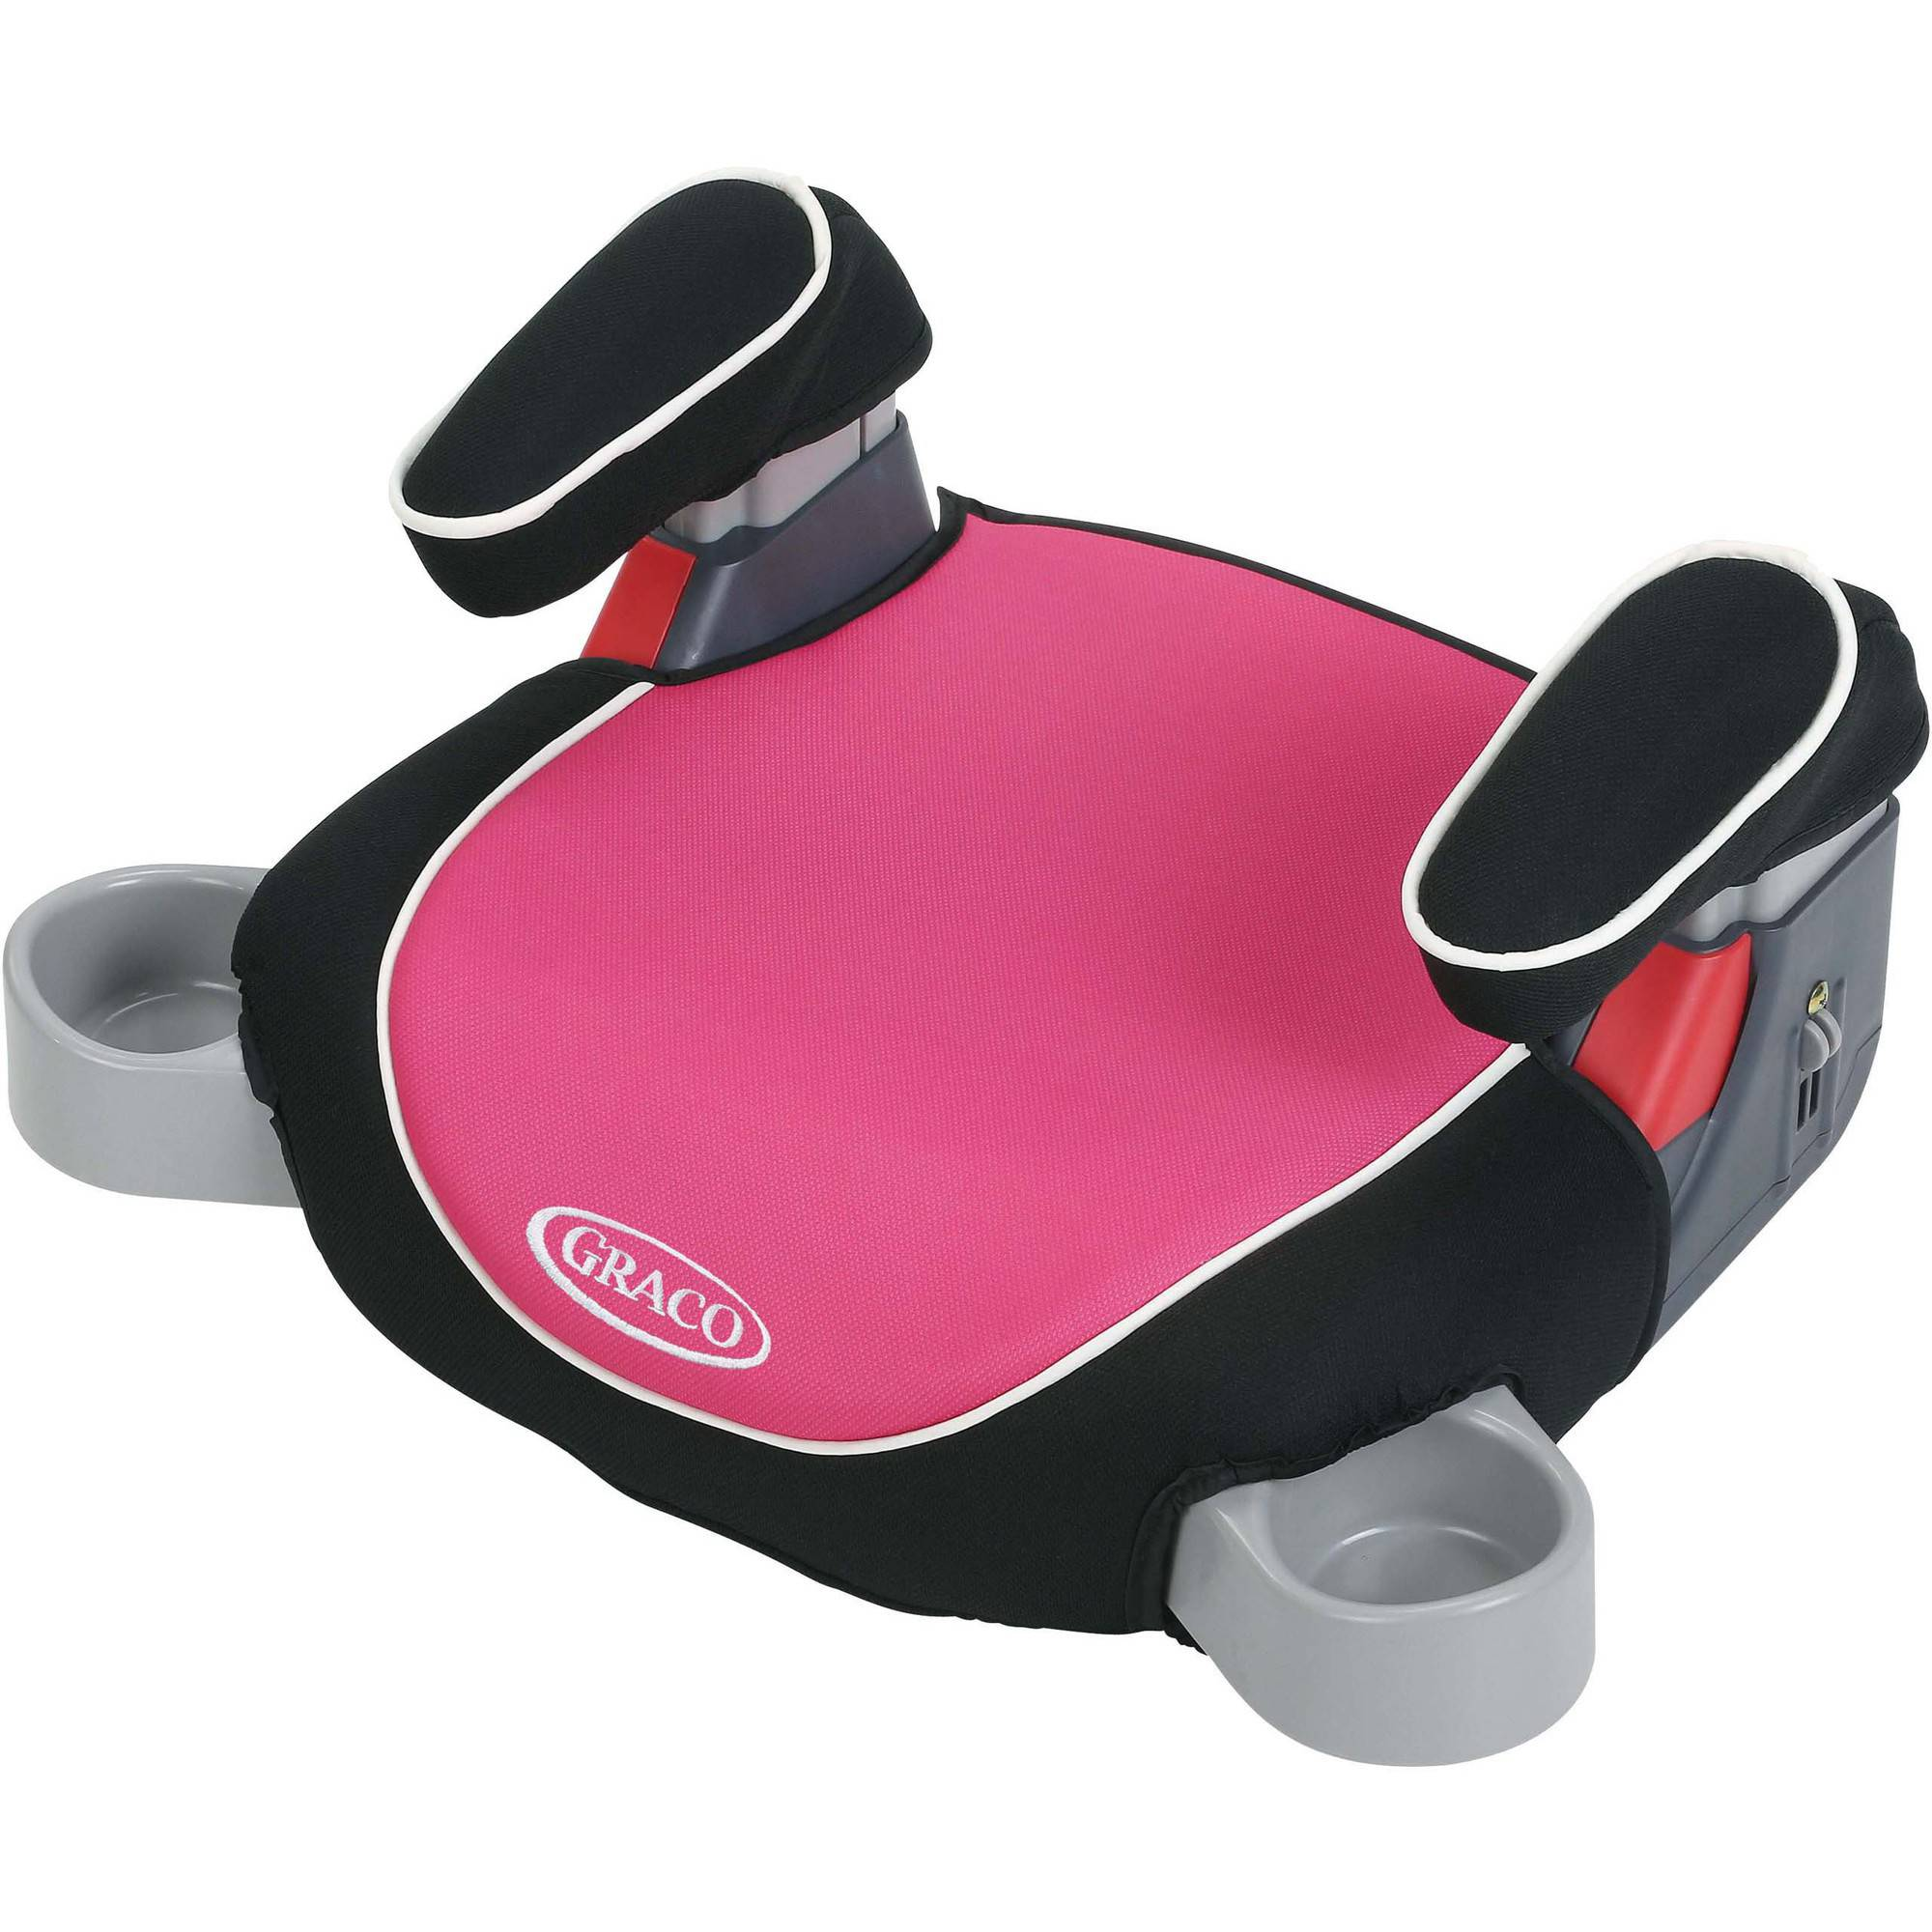 Graco Backless TurboBooster Booster Seat, Kenzie